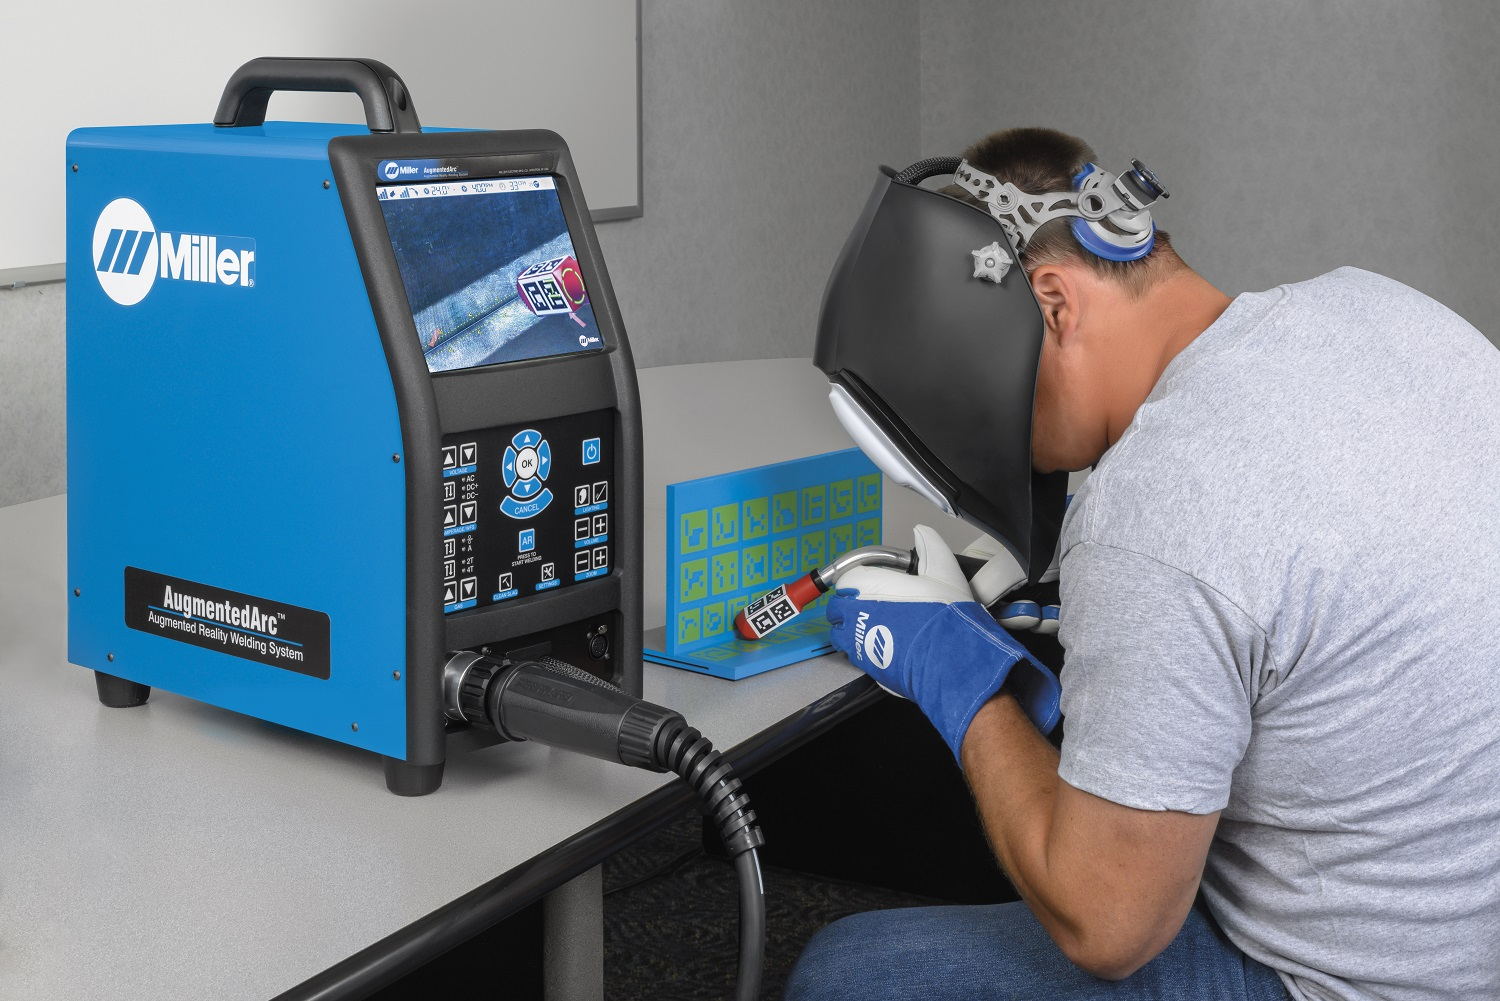 augmented reality delivers real time welding feedback during ideal for beginners and intermediate level welding students in trade schools union facilities and industrial training departments the new augmentedarc